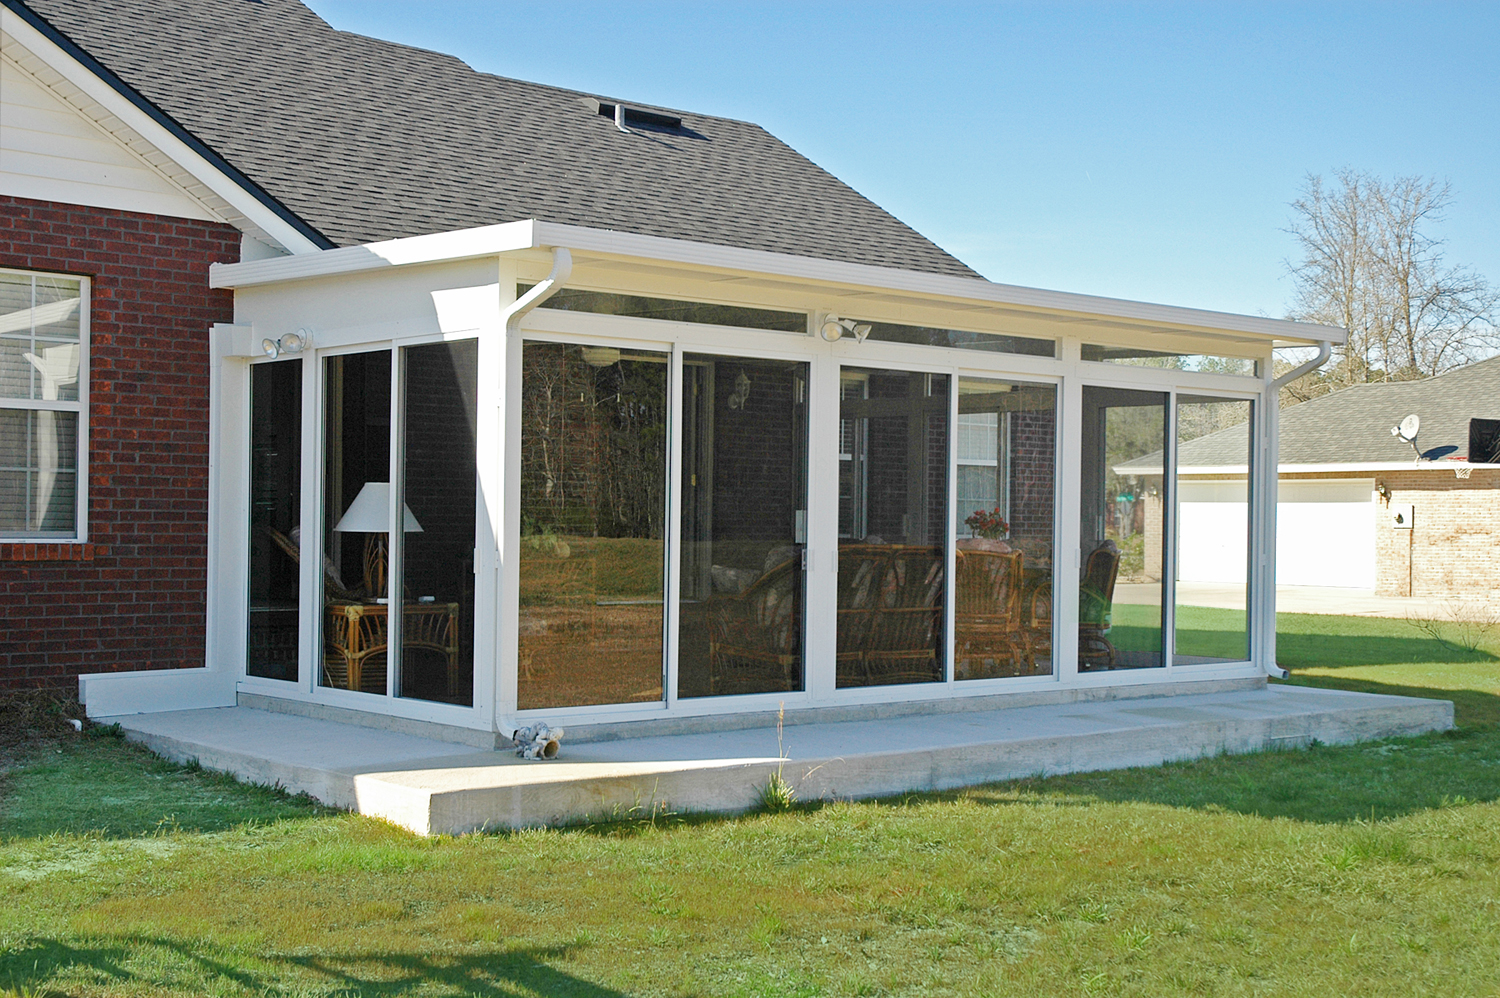 Betterliving patio sunrooms of pittsburgh studio rooms for Sunroom plans free